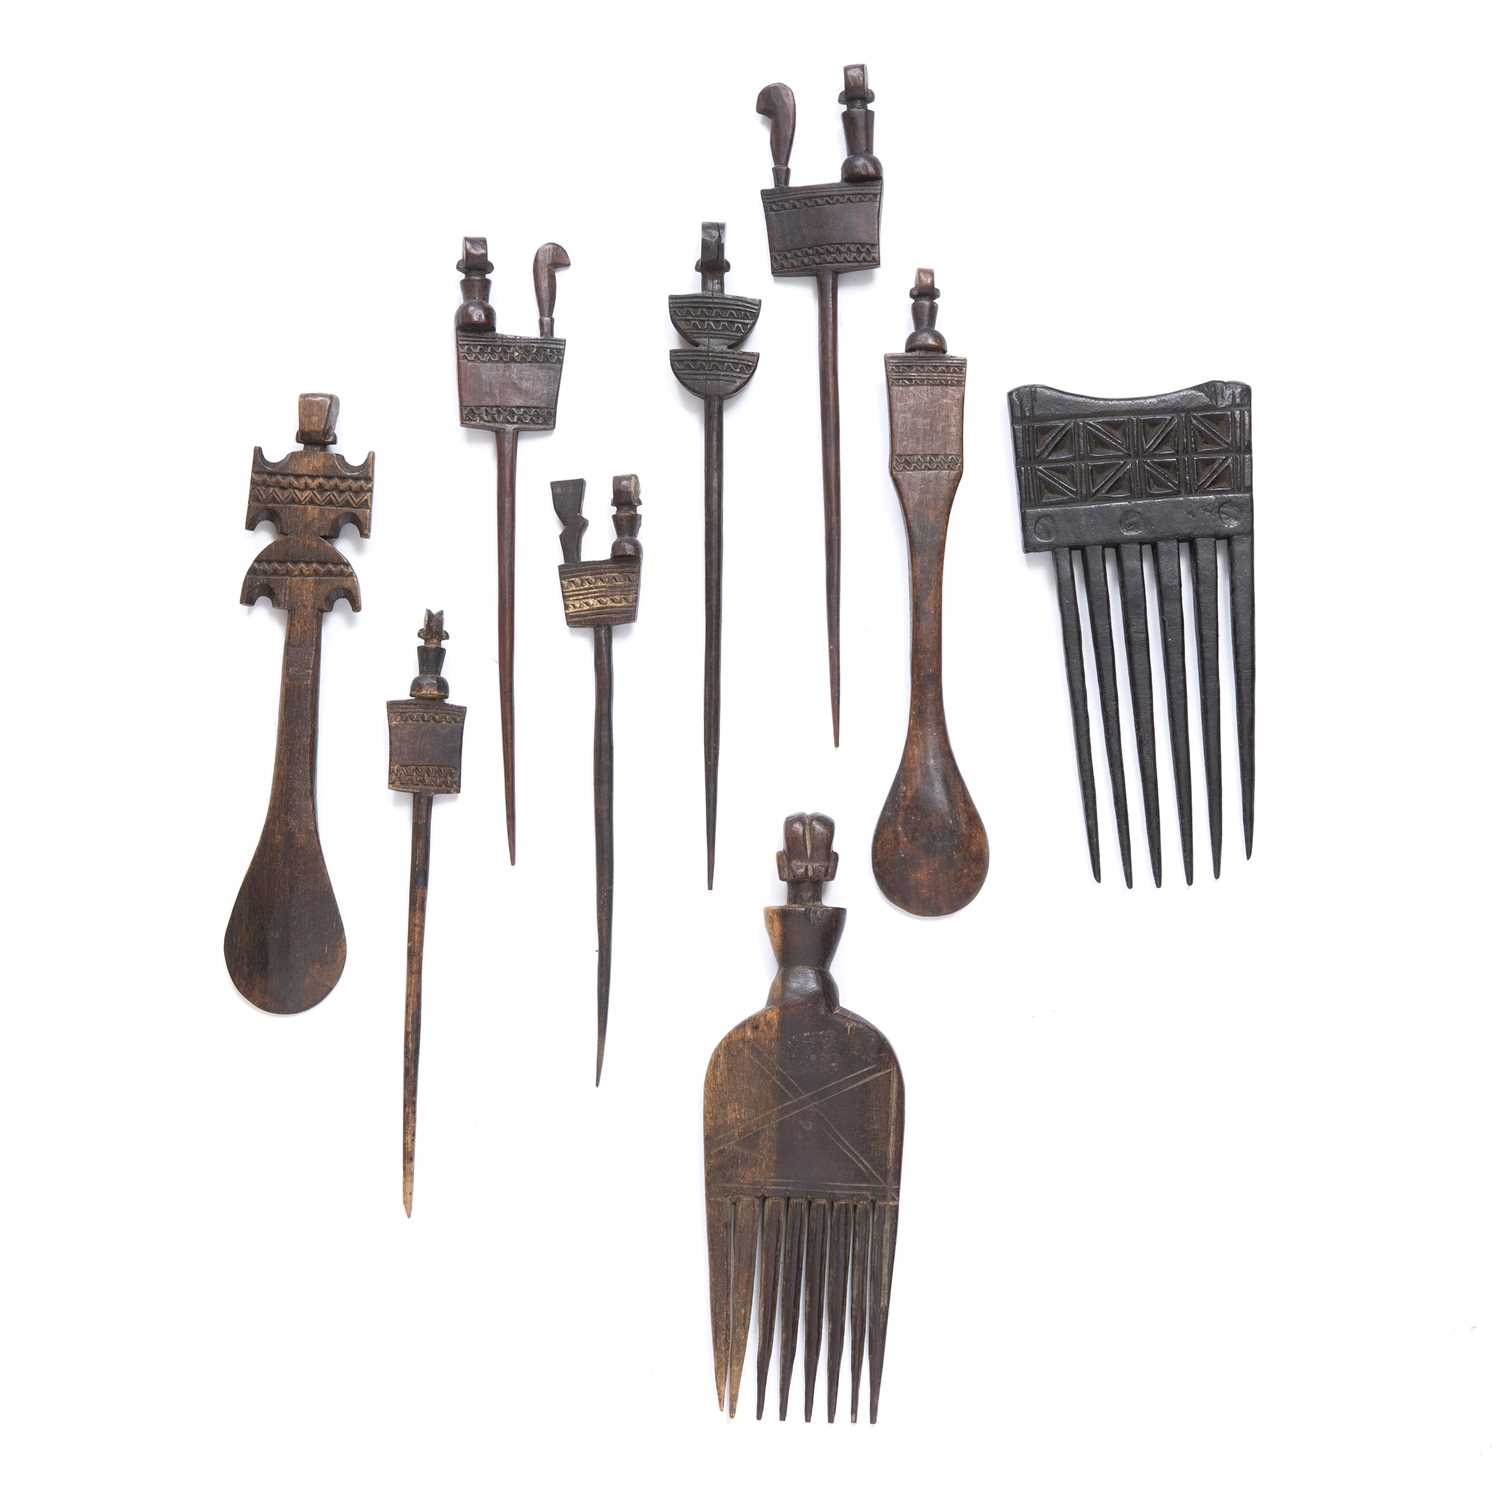 African Hemba hair combs and spoons, nine in total all carved wood, some with carved with figures to - Image 2 of 2